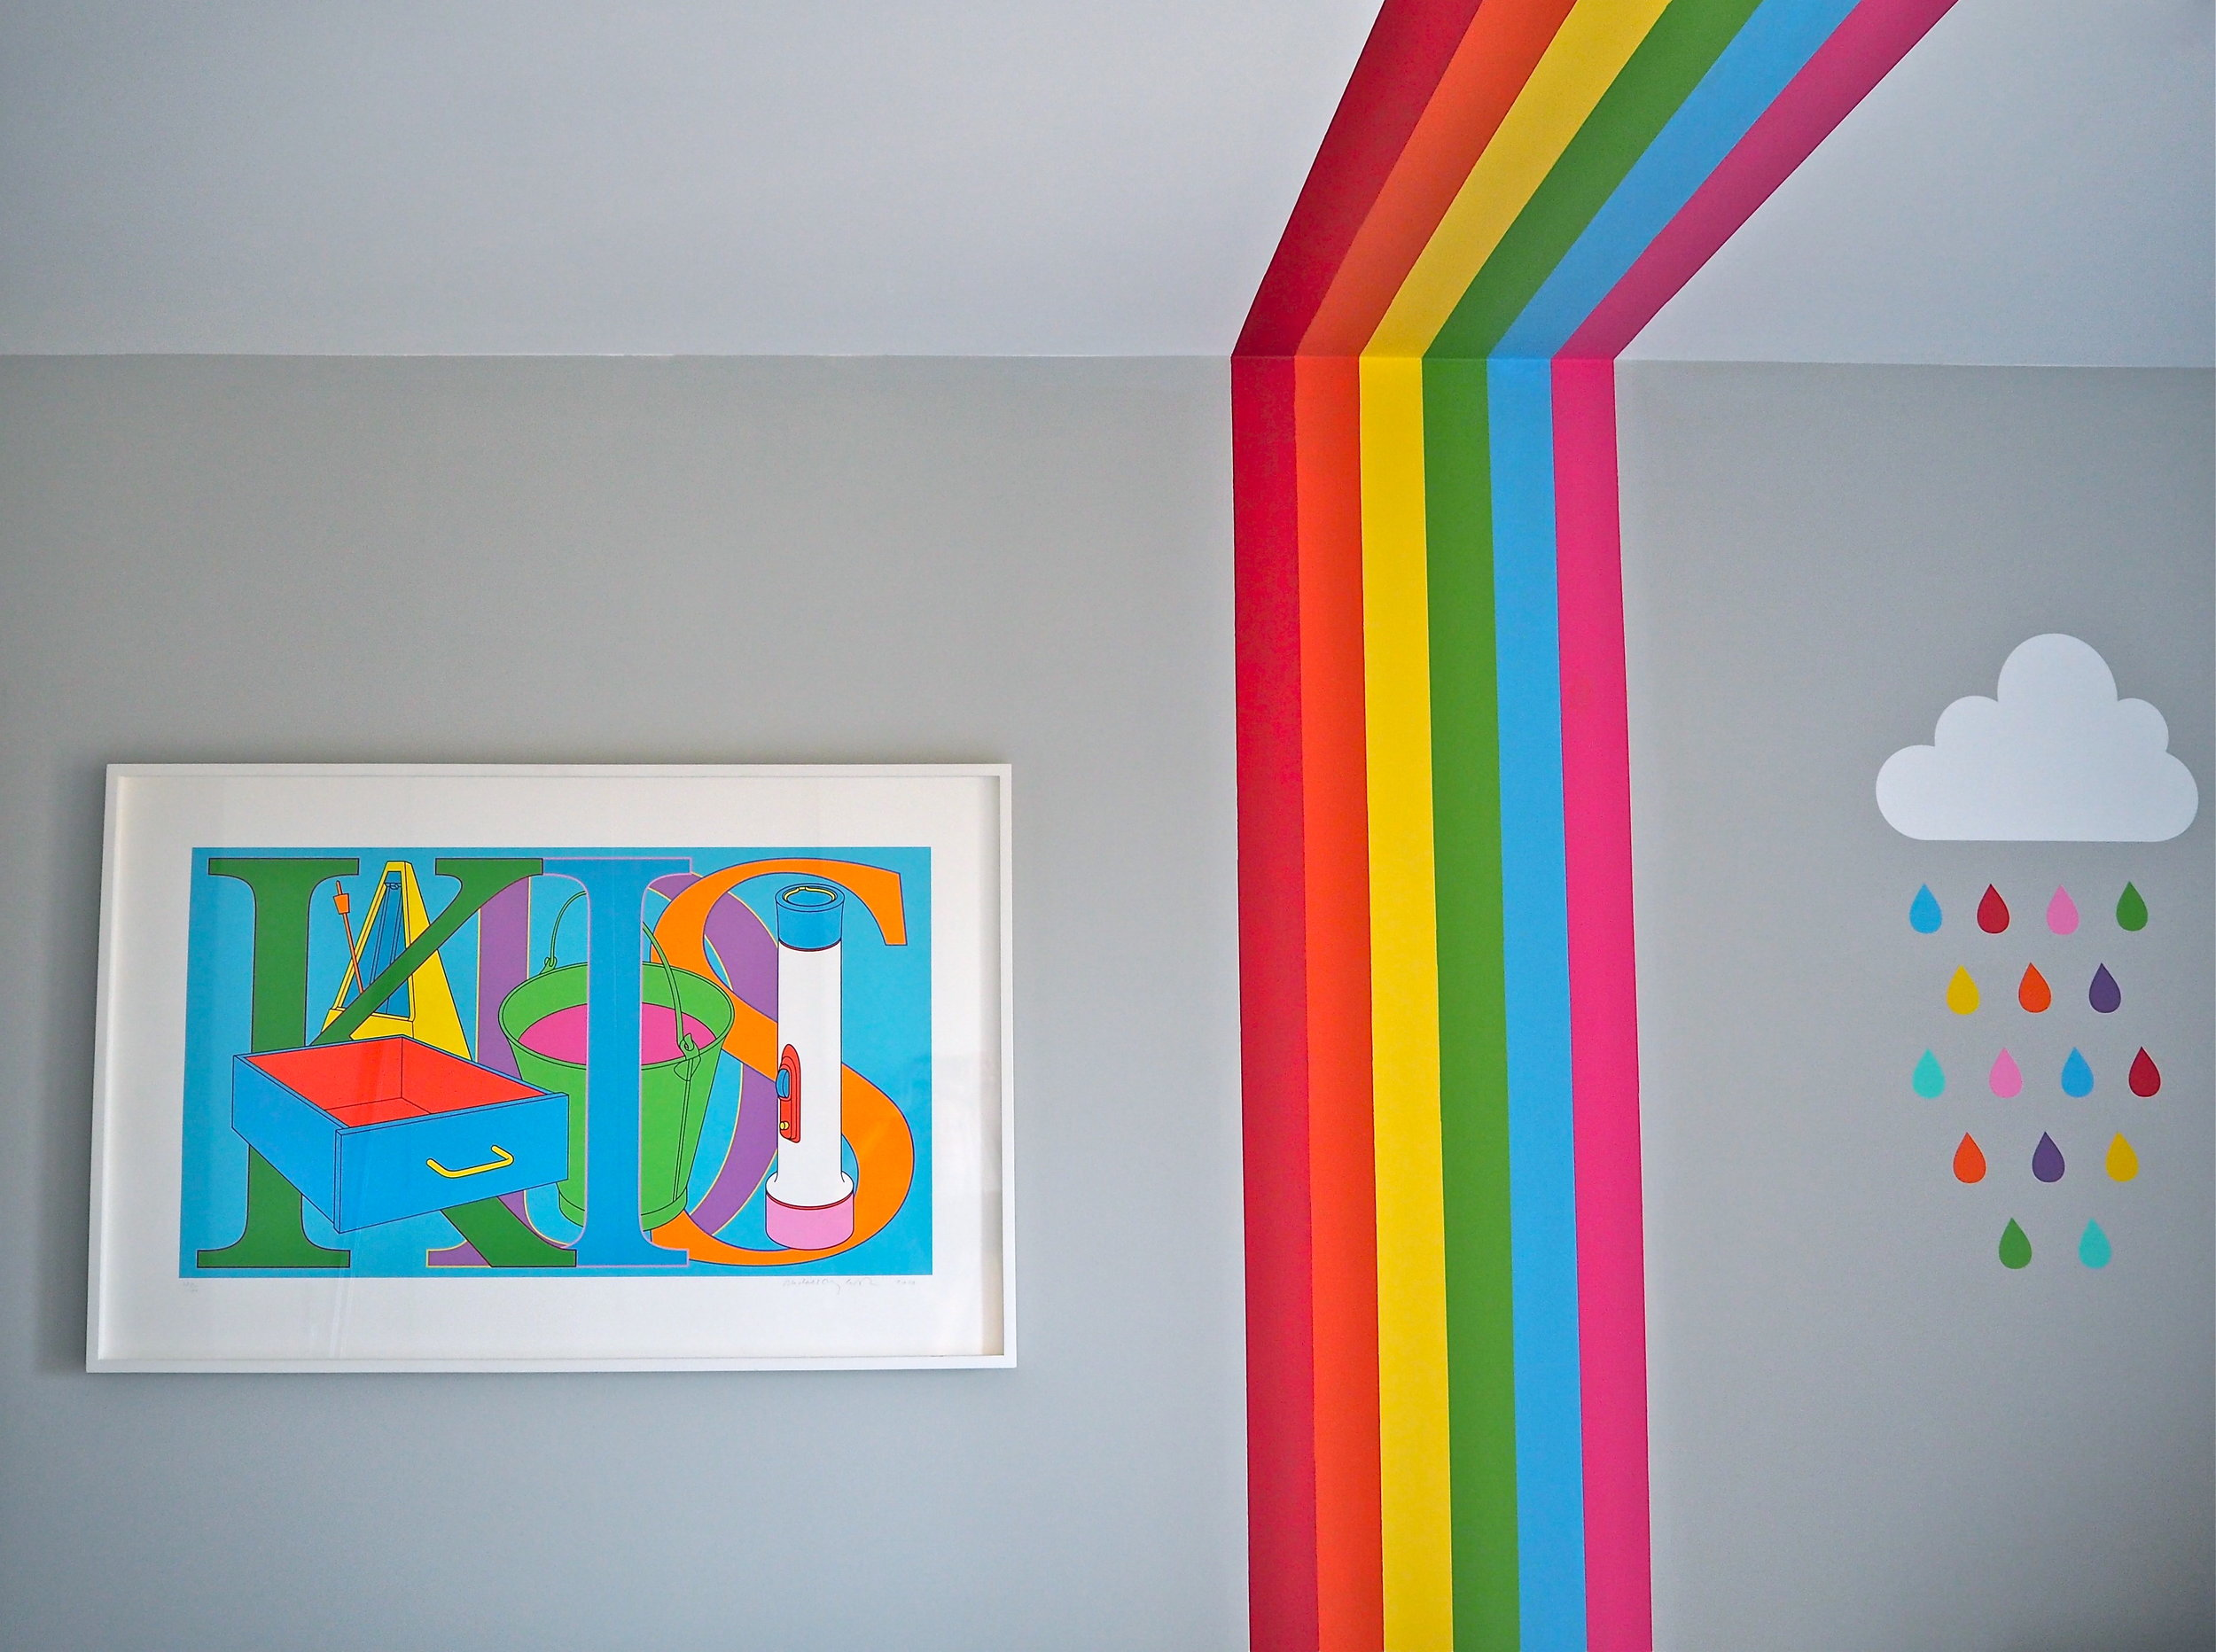 How To Diy A Rainbow Mural In Your Child S Room With Decorators Tape